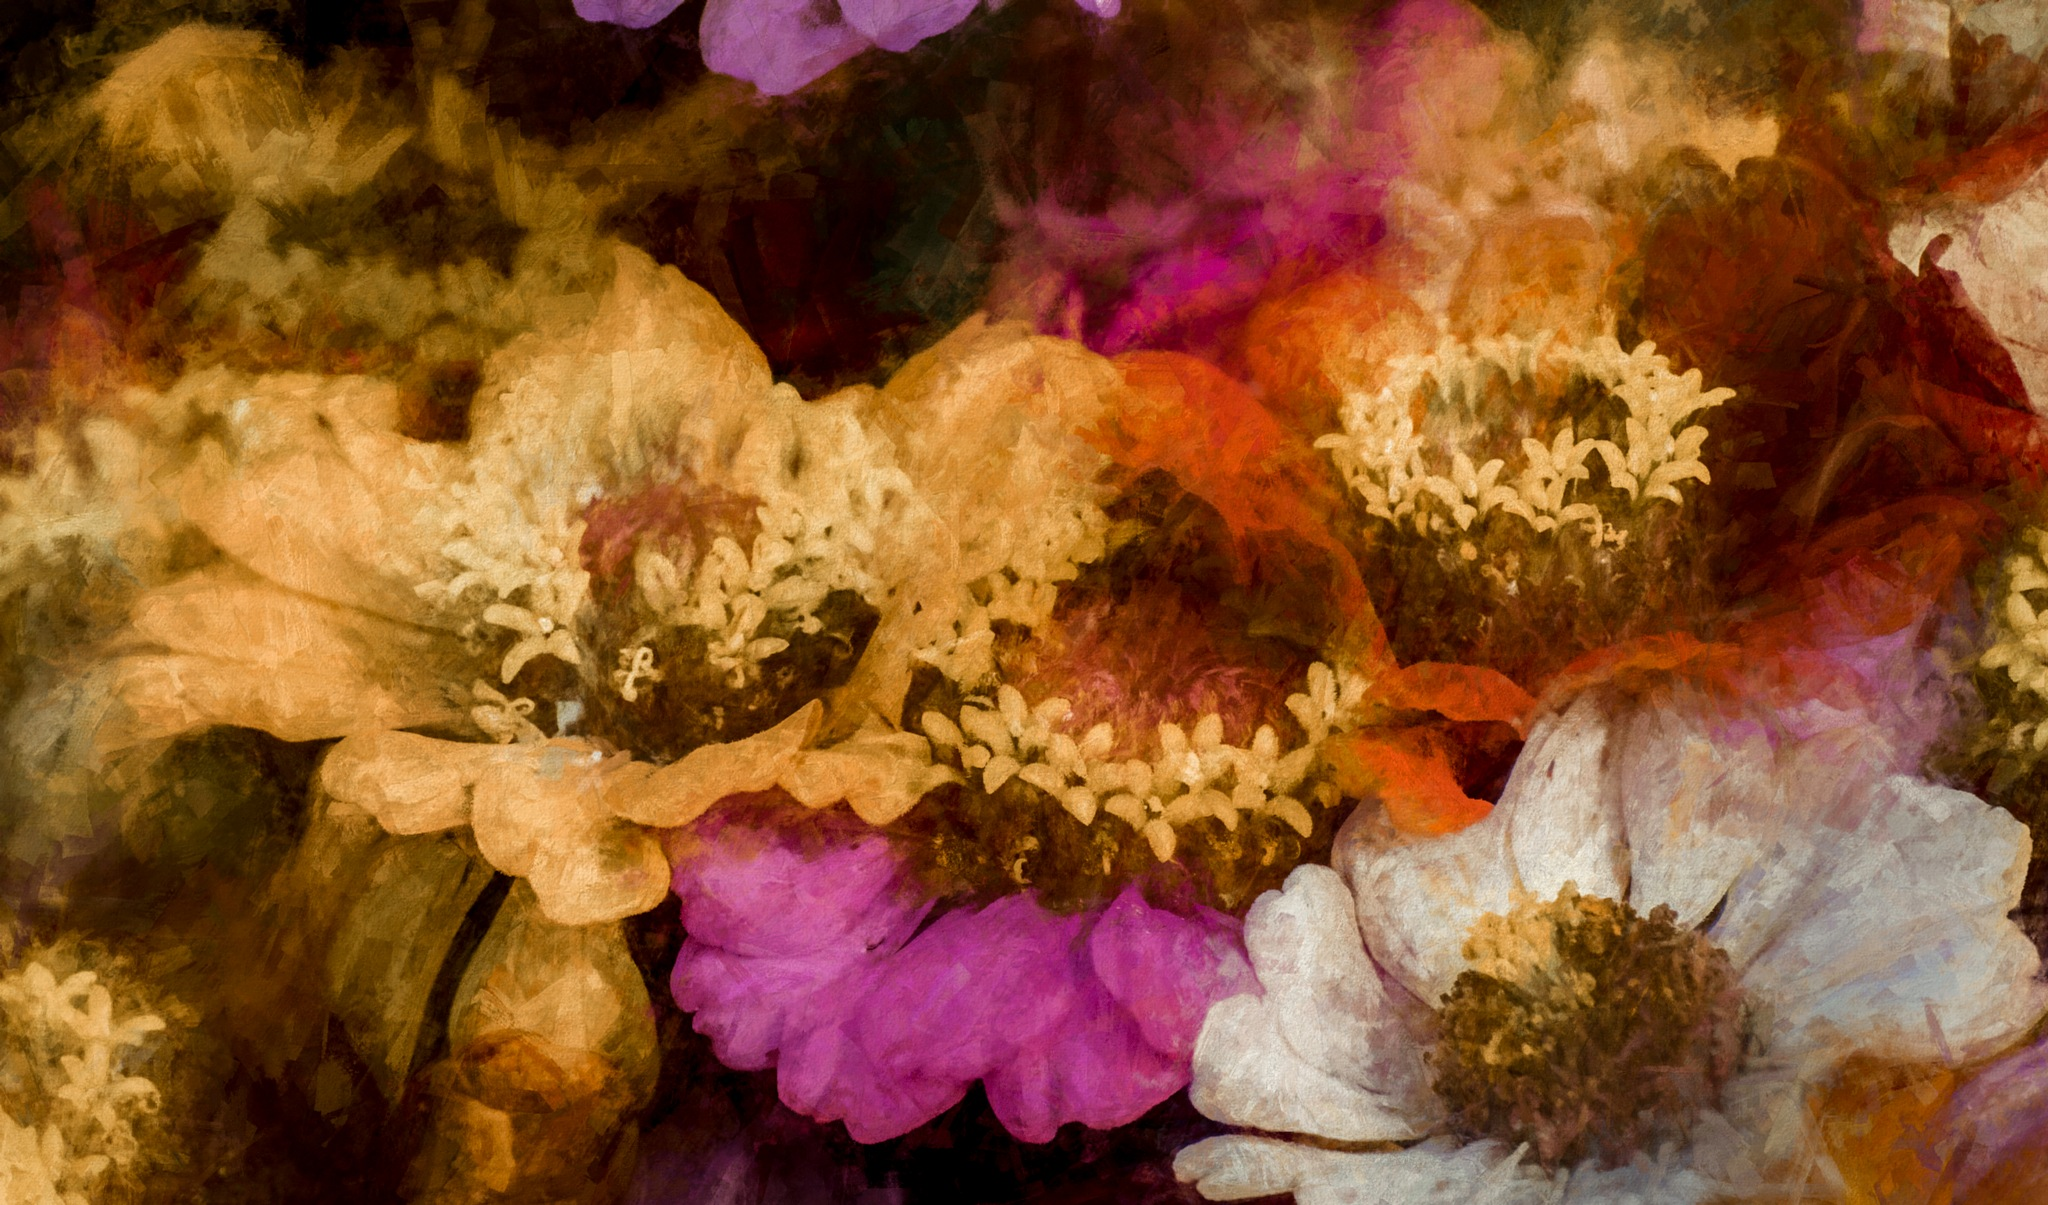 Floral 93 by JohnEllingson